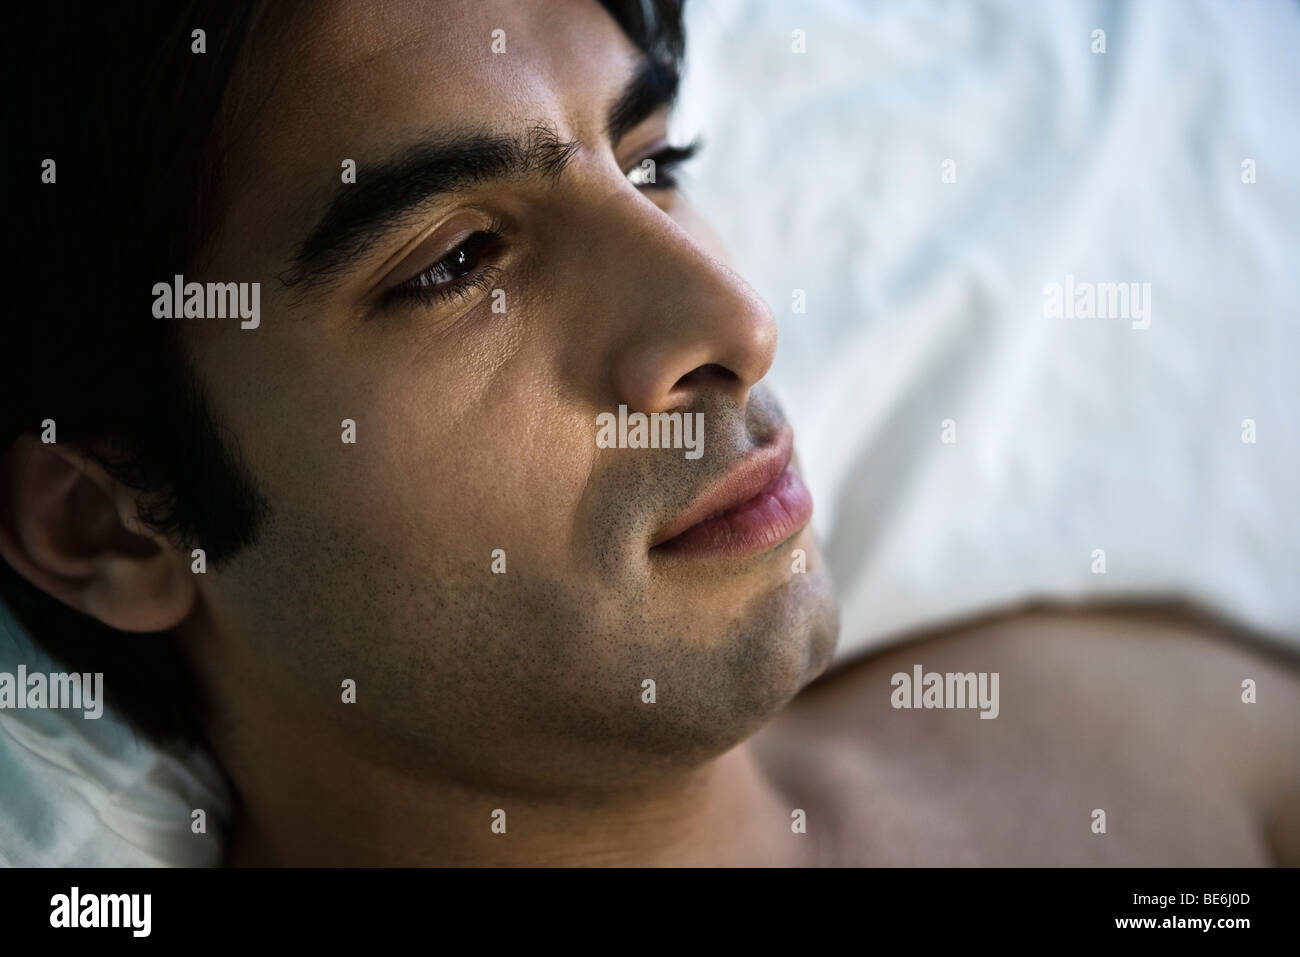 Man thinking - Stock Image